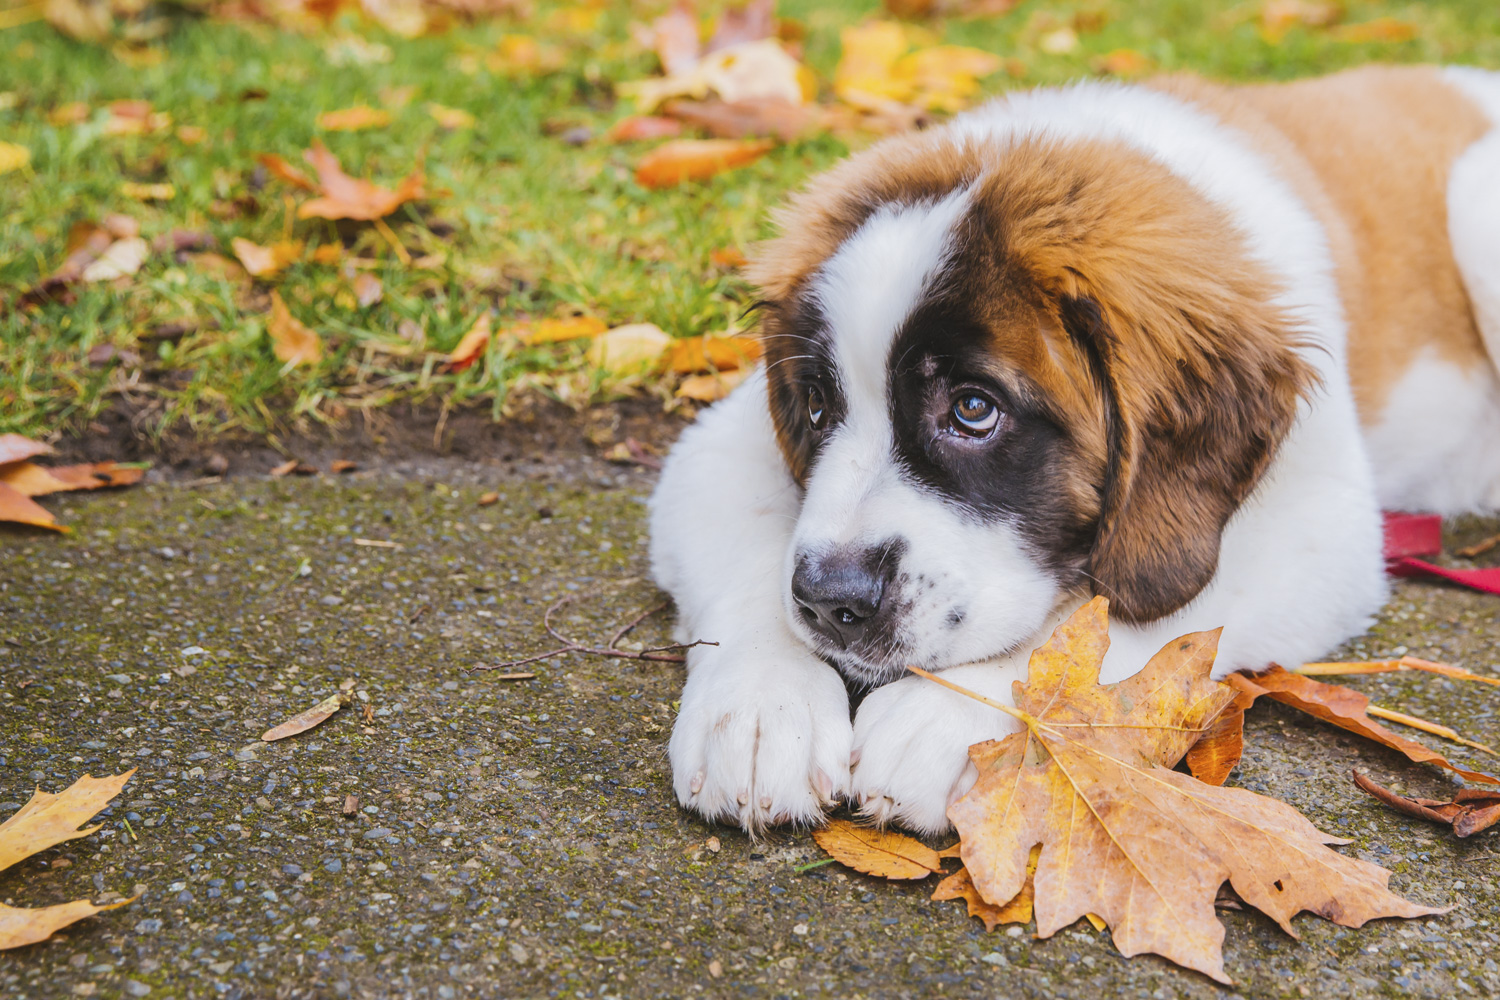 Look at this little floofy butt! Meet John Candy. John Candy is a five-month-old Saint Bernard who can be described as a floppy man who wants to meet everyone. John Candy likes water, treats, and golden retrievers. He dislikes nothing because he's too young to be bitter! You can follow little John Candy's journey at @motleycrewalking! (Image: Sunita Martini / Seattle Refined).